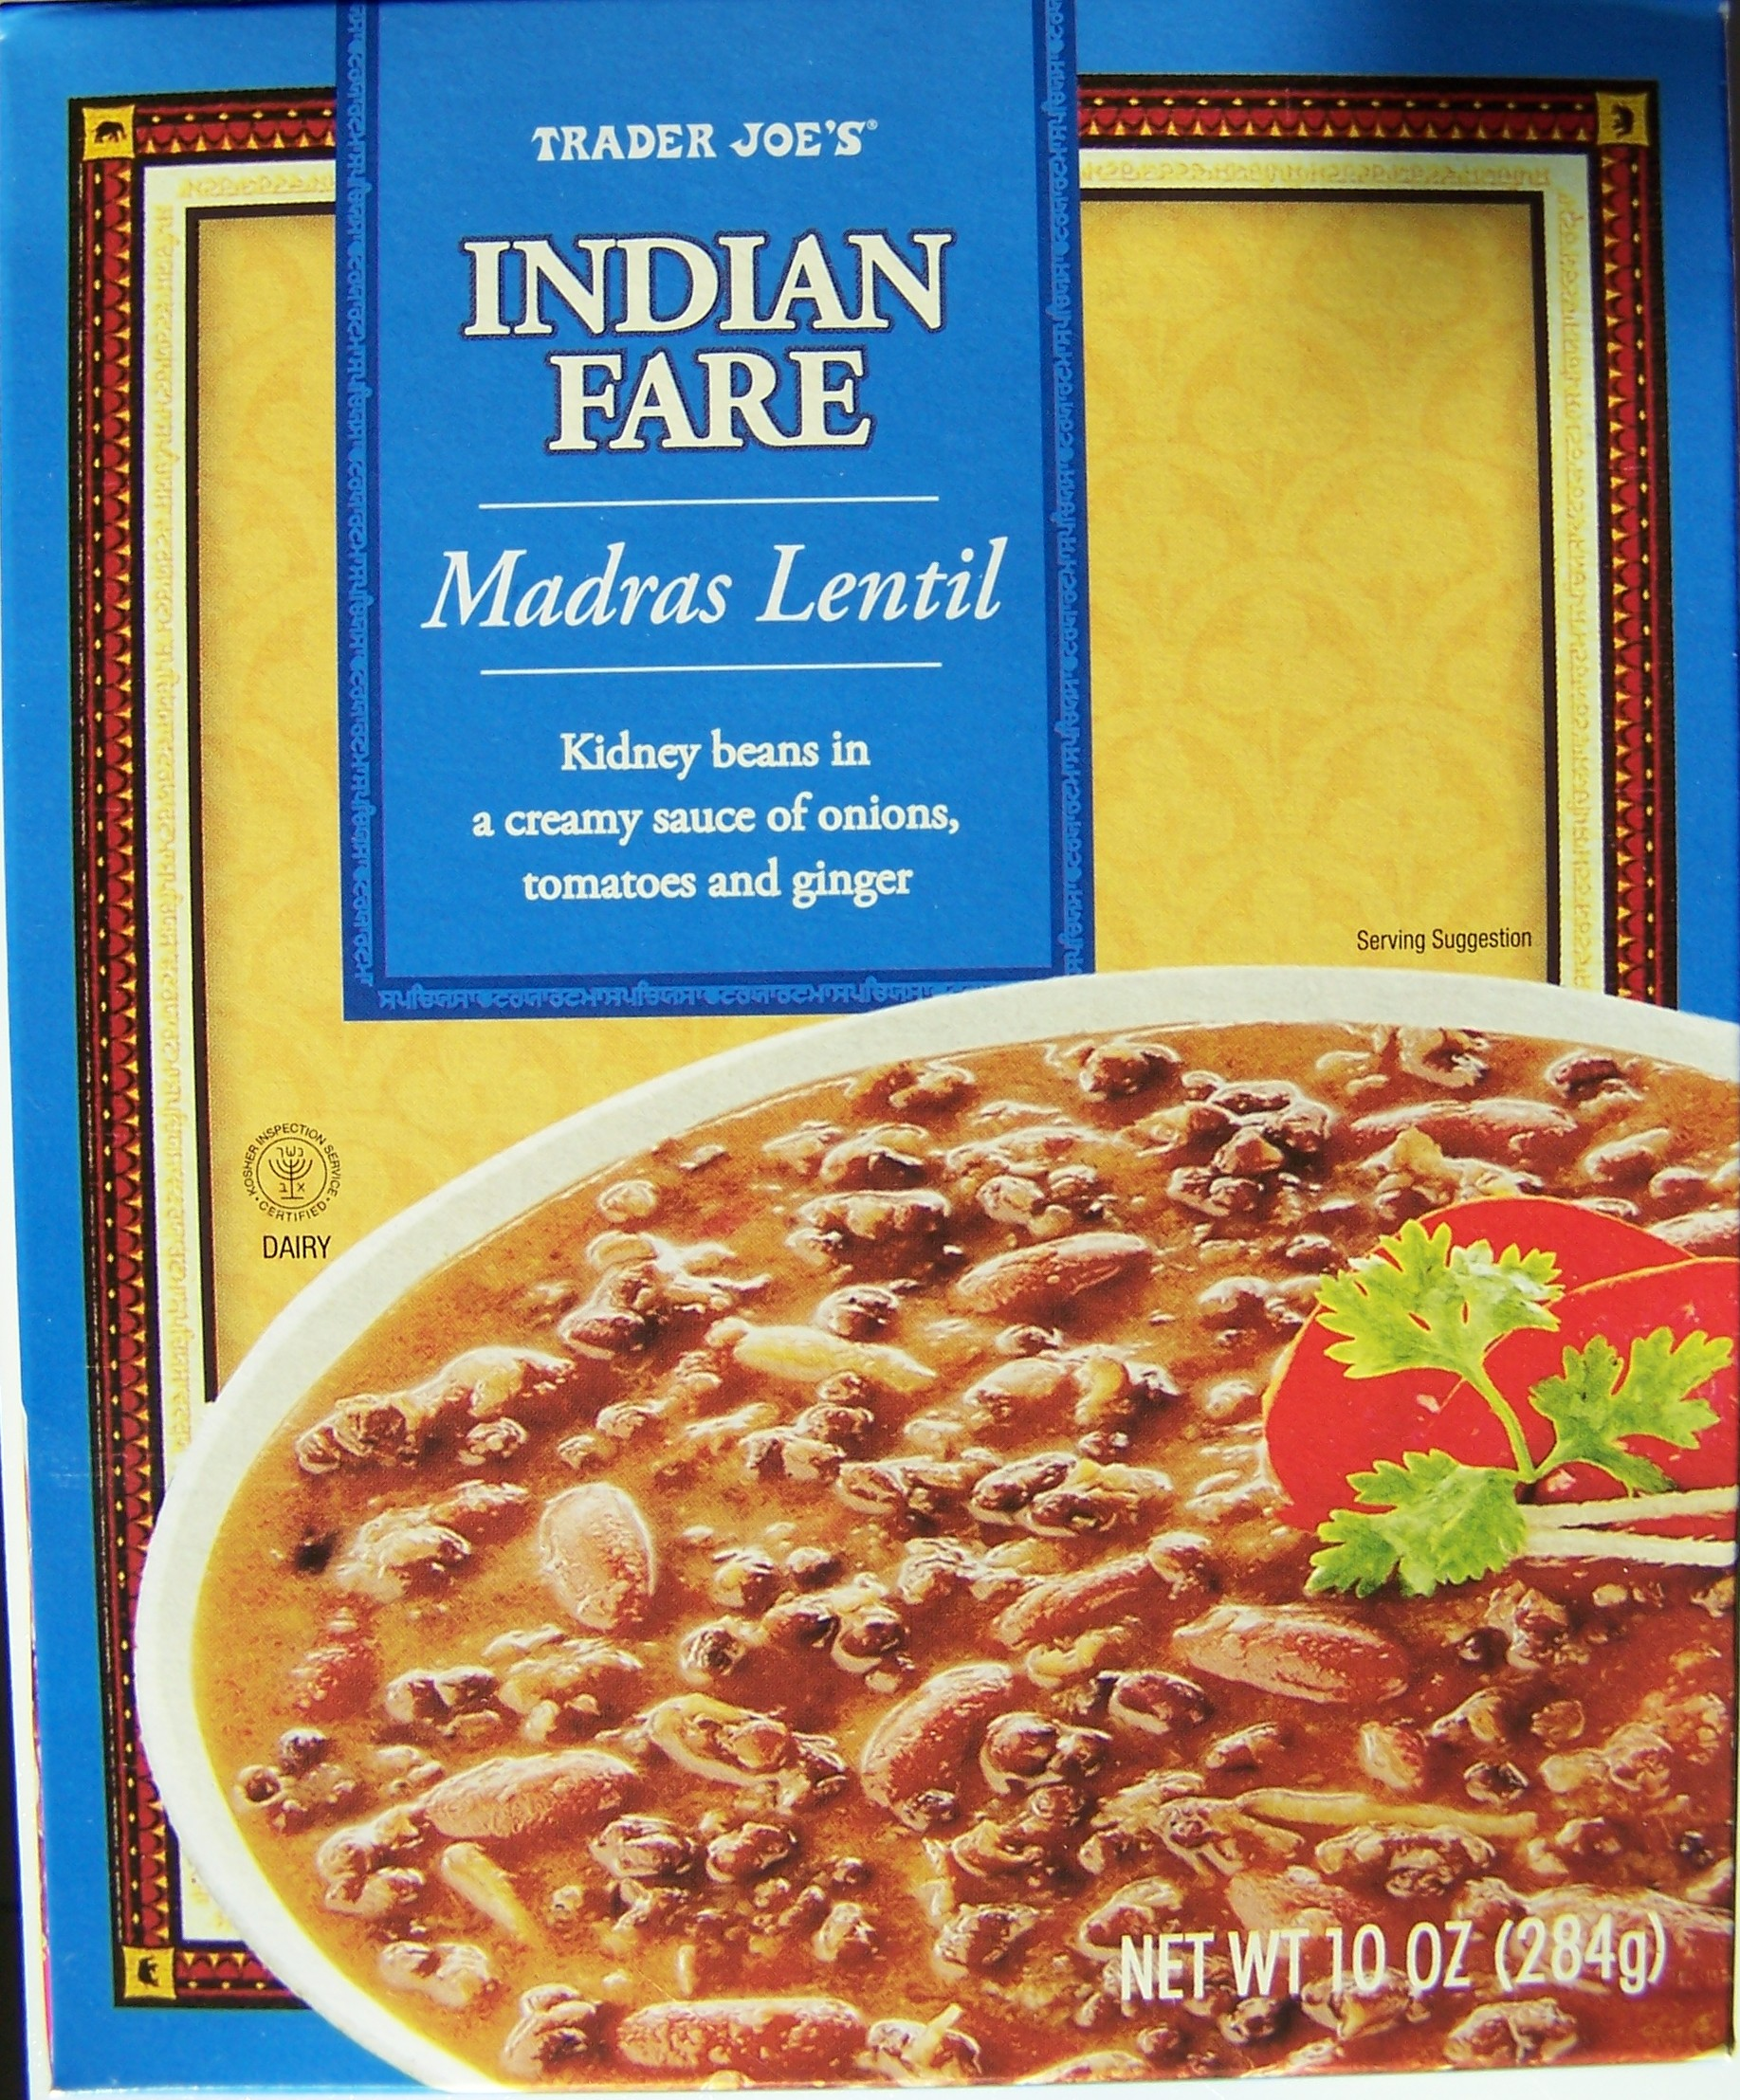 Trader joes madras lentil food review aint found a good this forumfinder Gallery